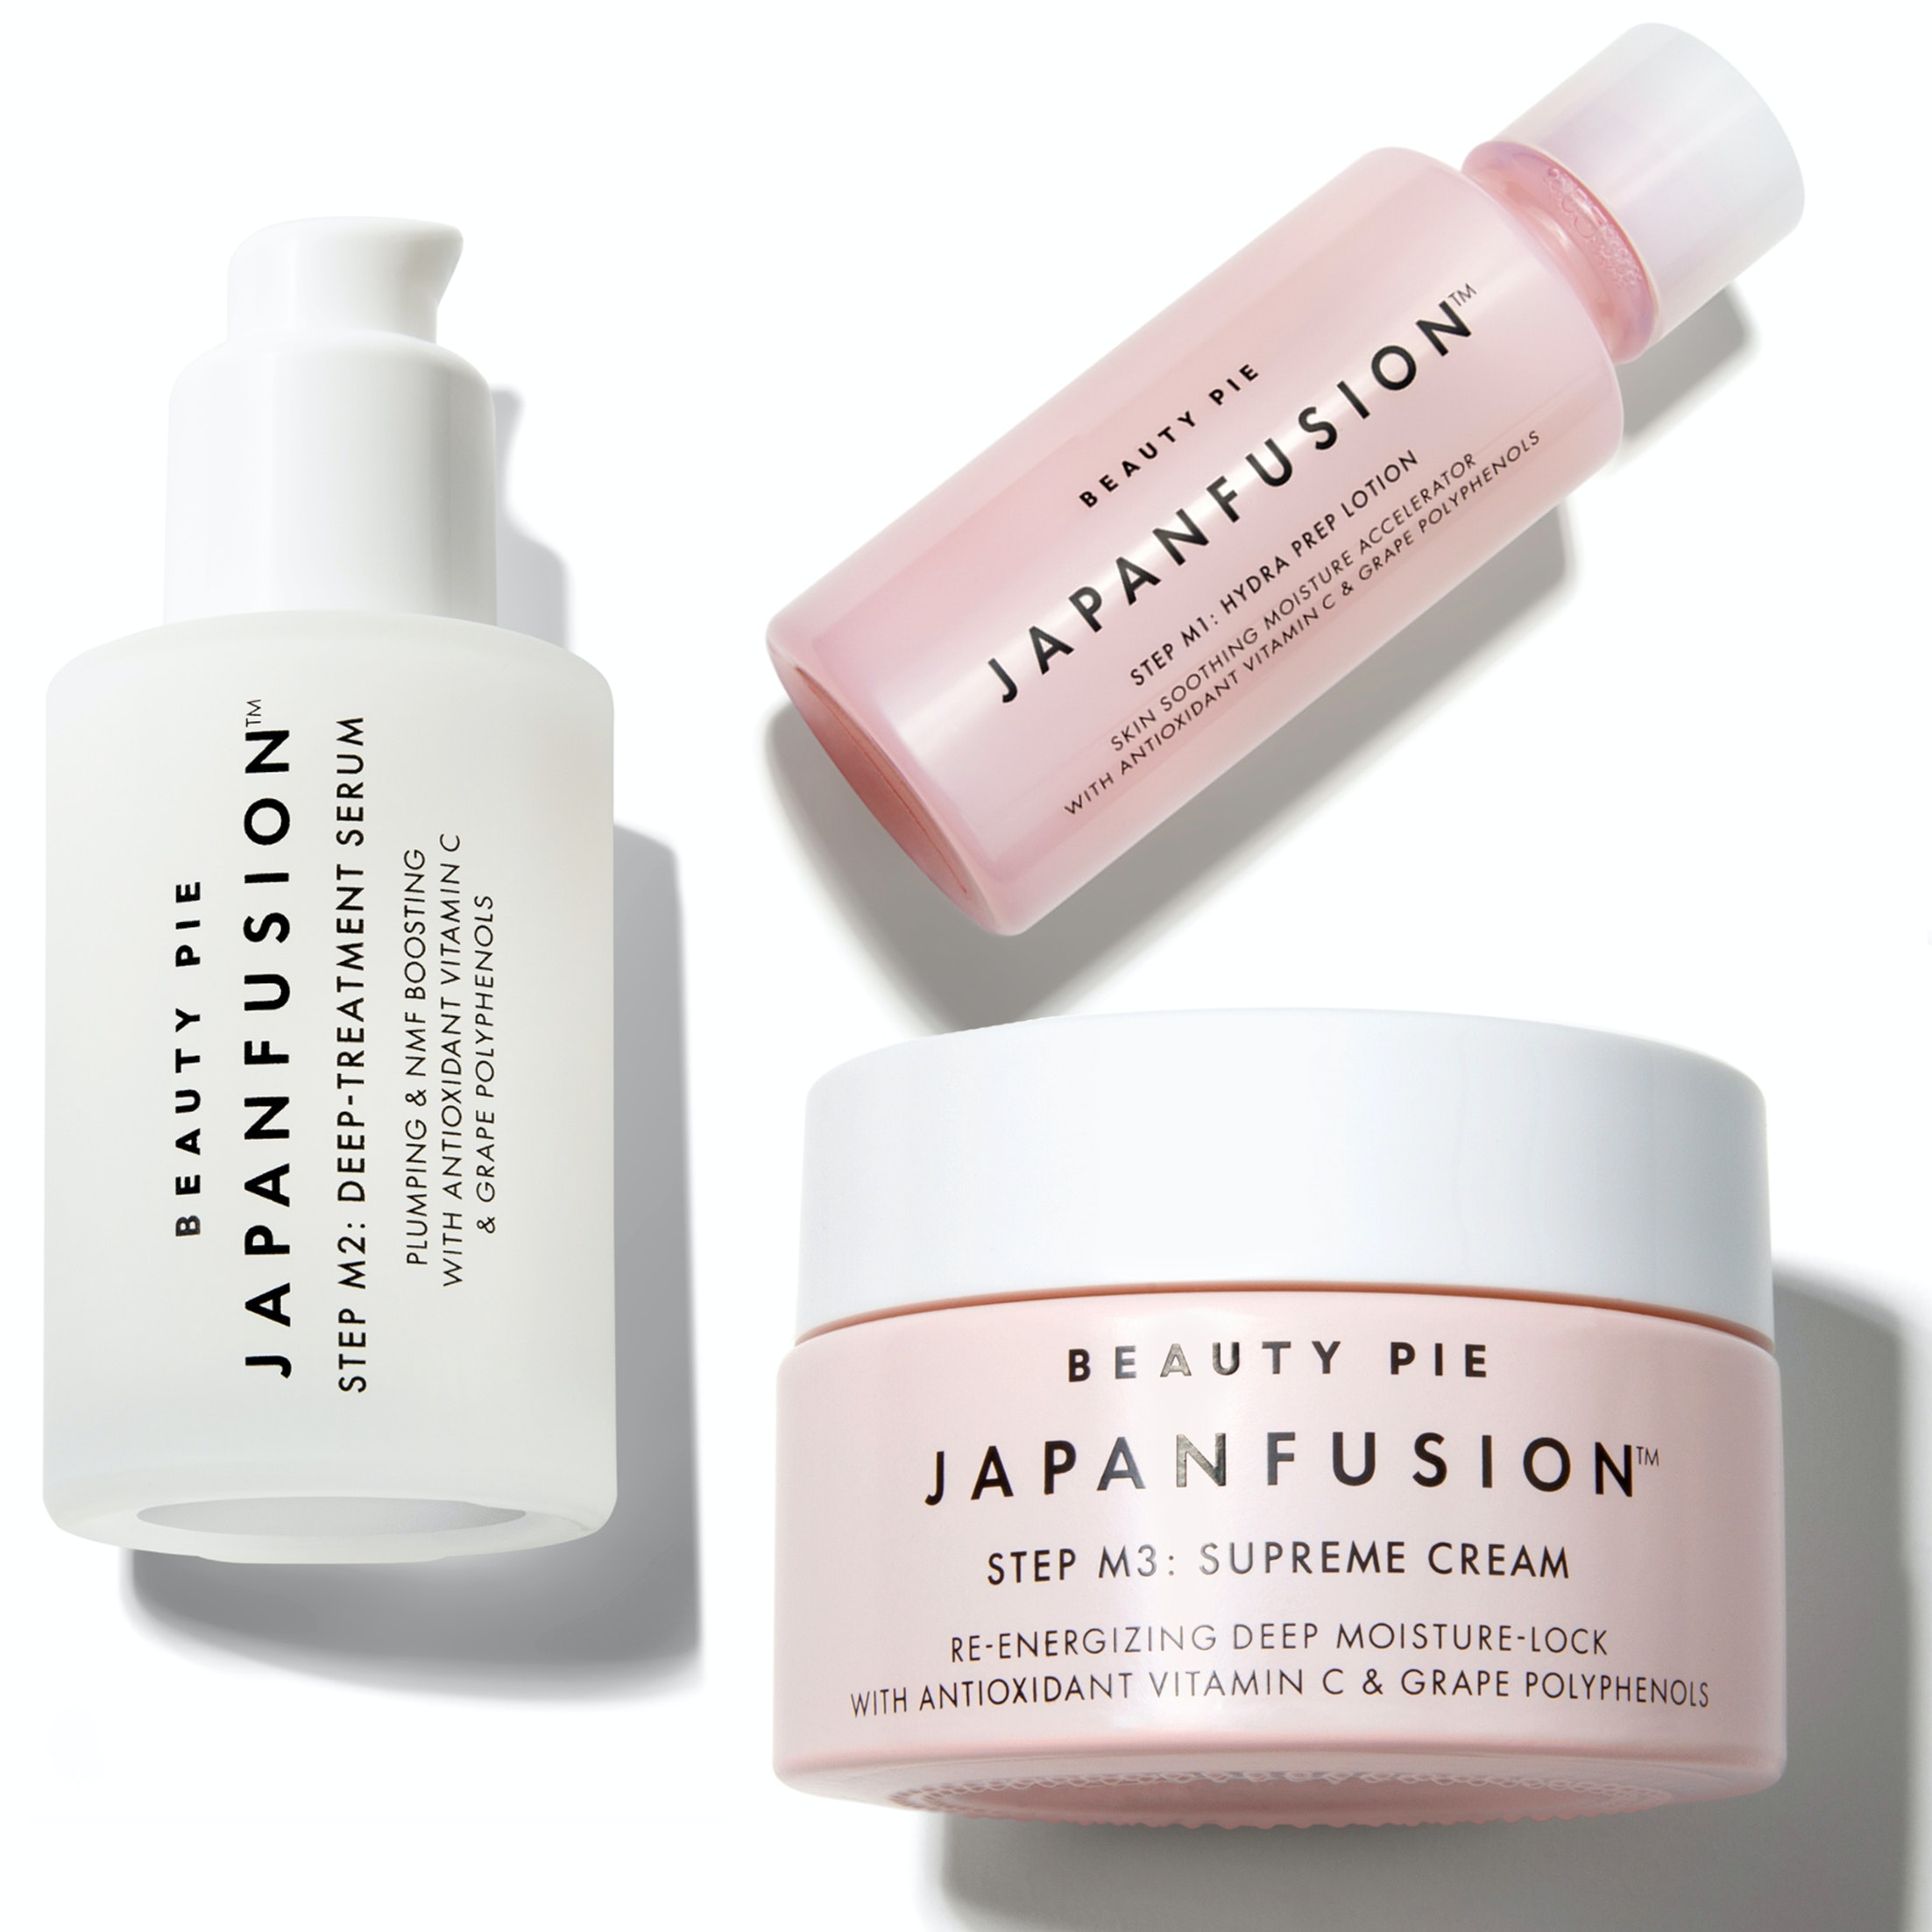 Beauty Pie® Japanfusion™ 3-Step System